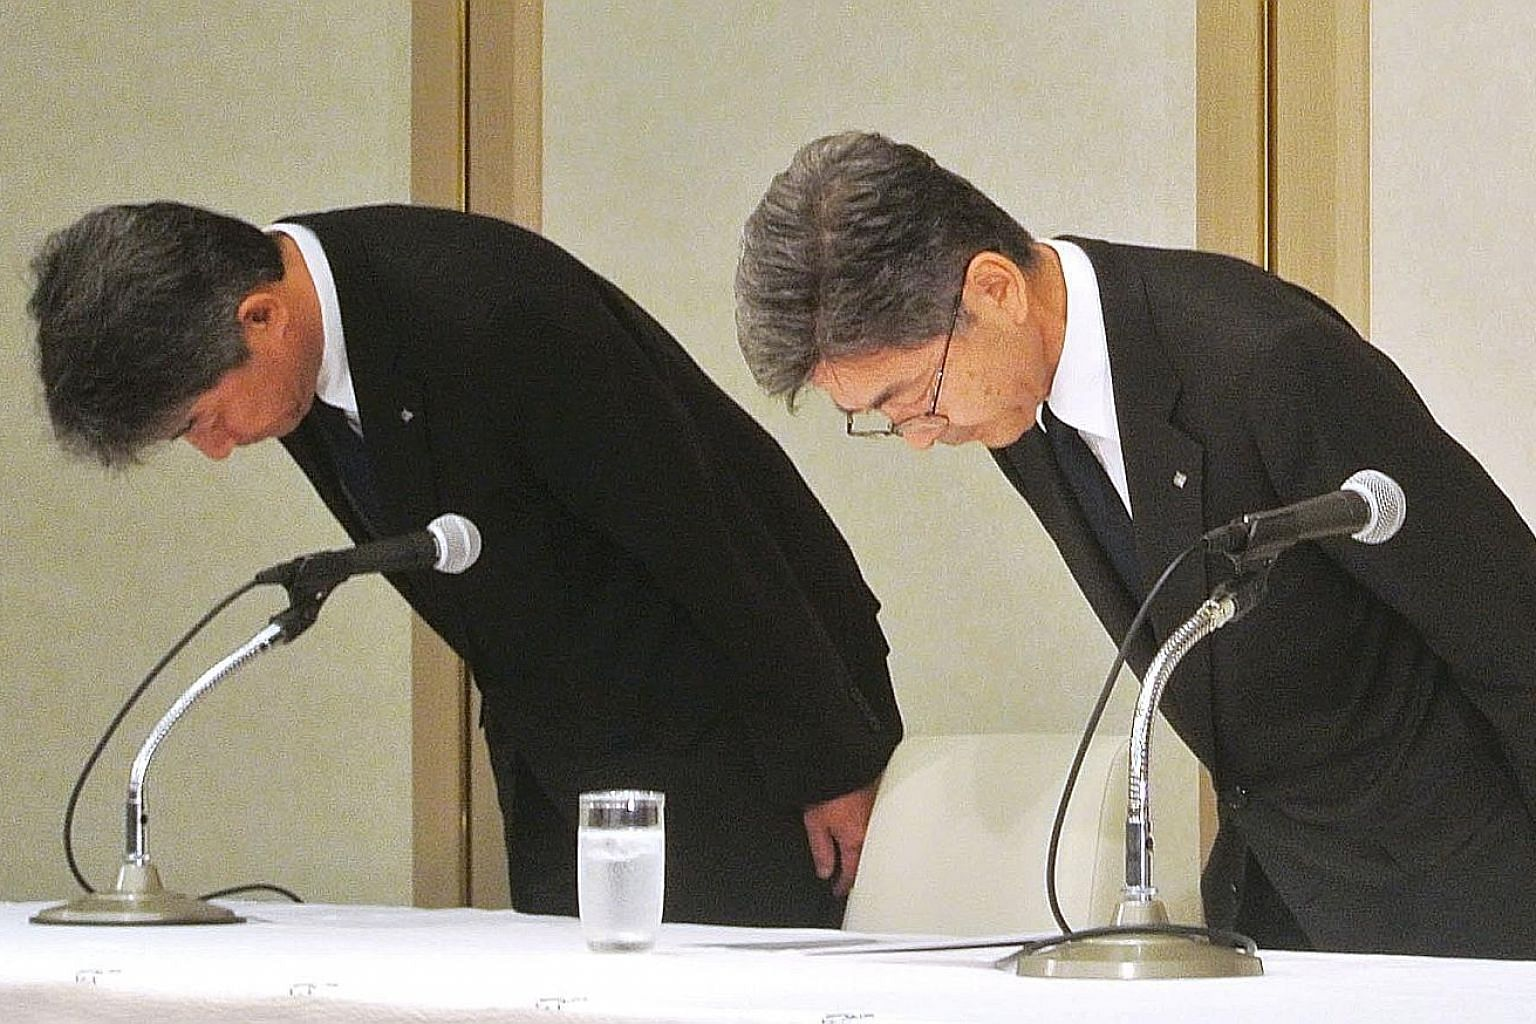 Kobe Steel's executive vice-president Naoto Umehara (right) apologising at a news conference in Tokyo on Sunday. Shares of the company plunged 22 per cent.